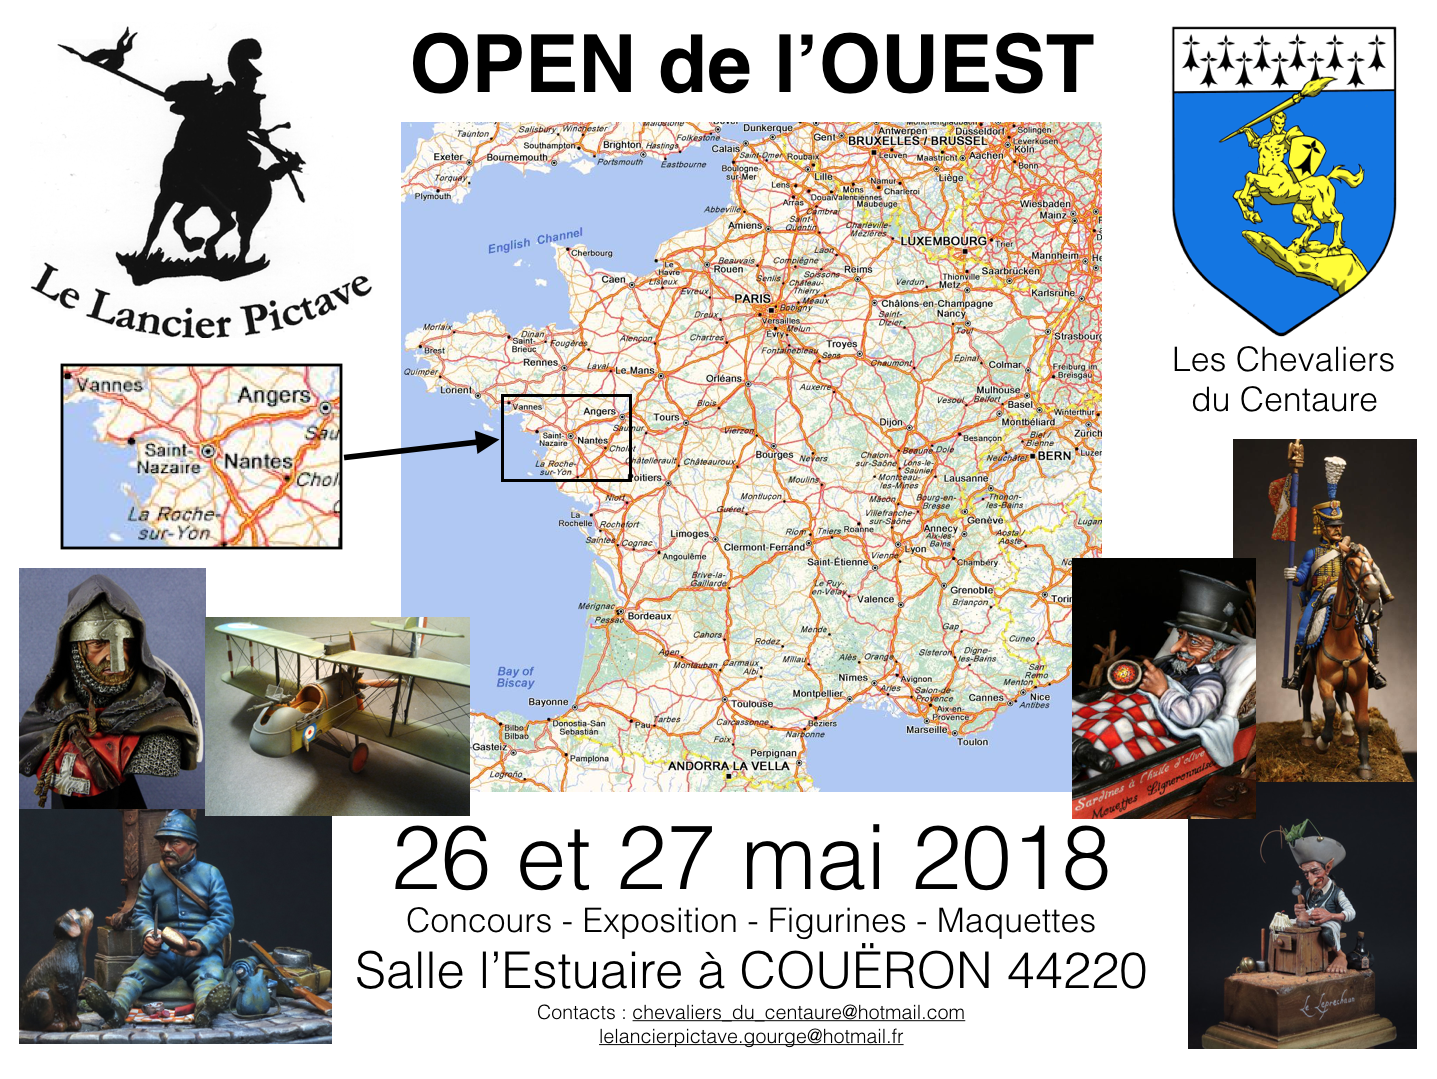 Flyer OPEN de lOUEST 2018